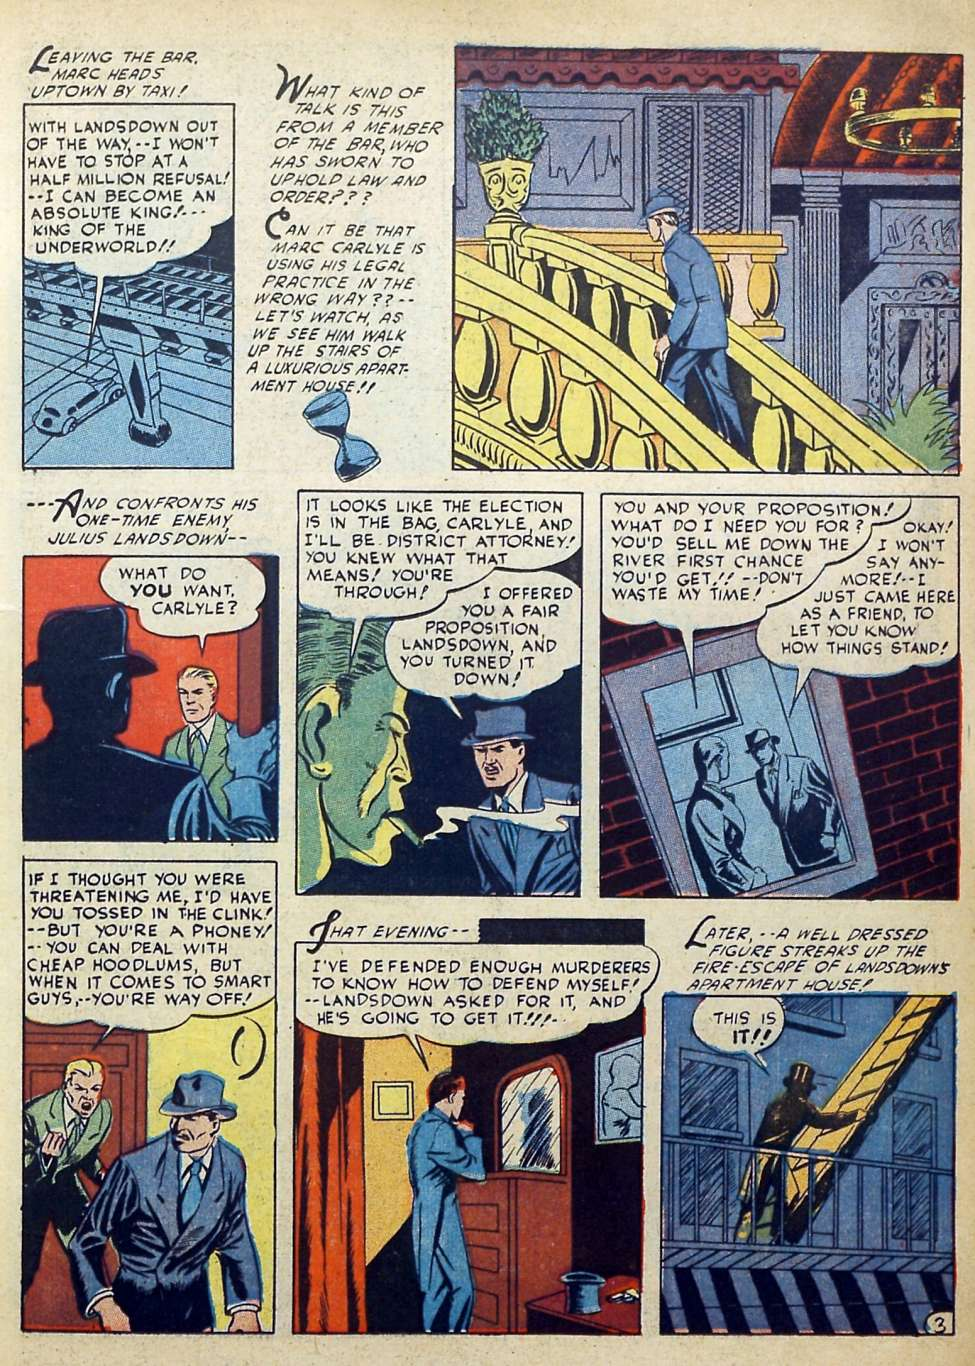 Suspense Comics #3 from 1944 19